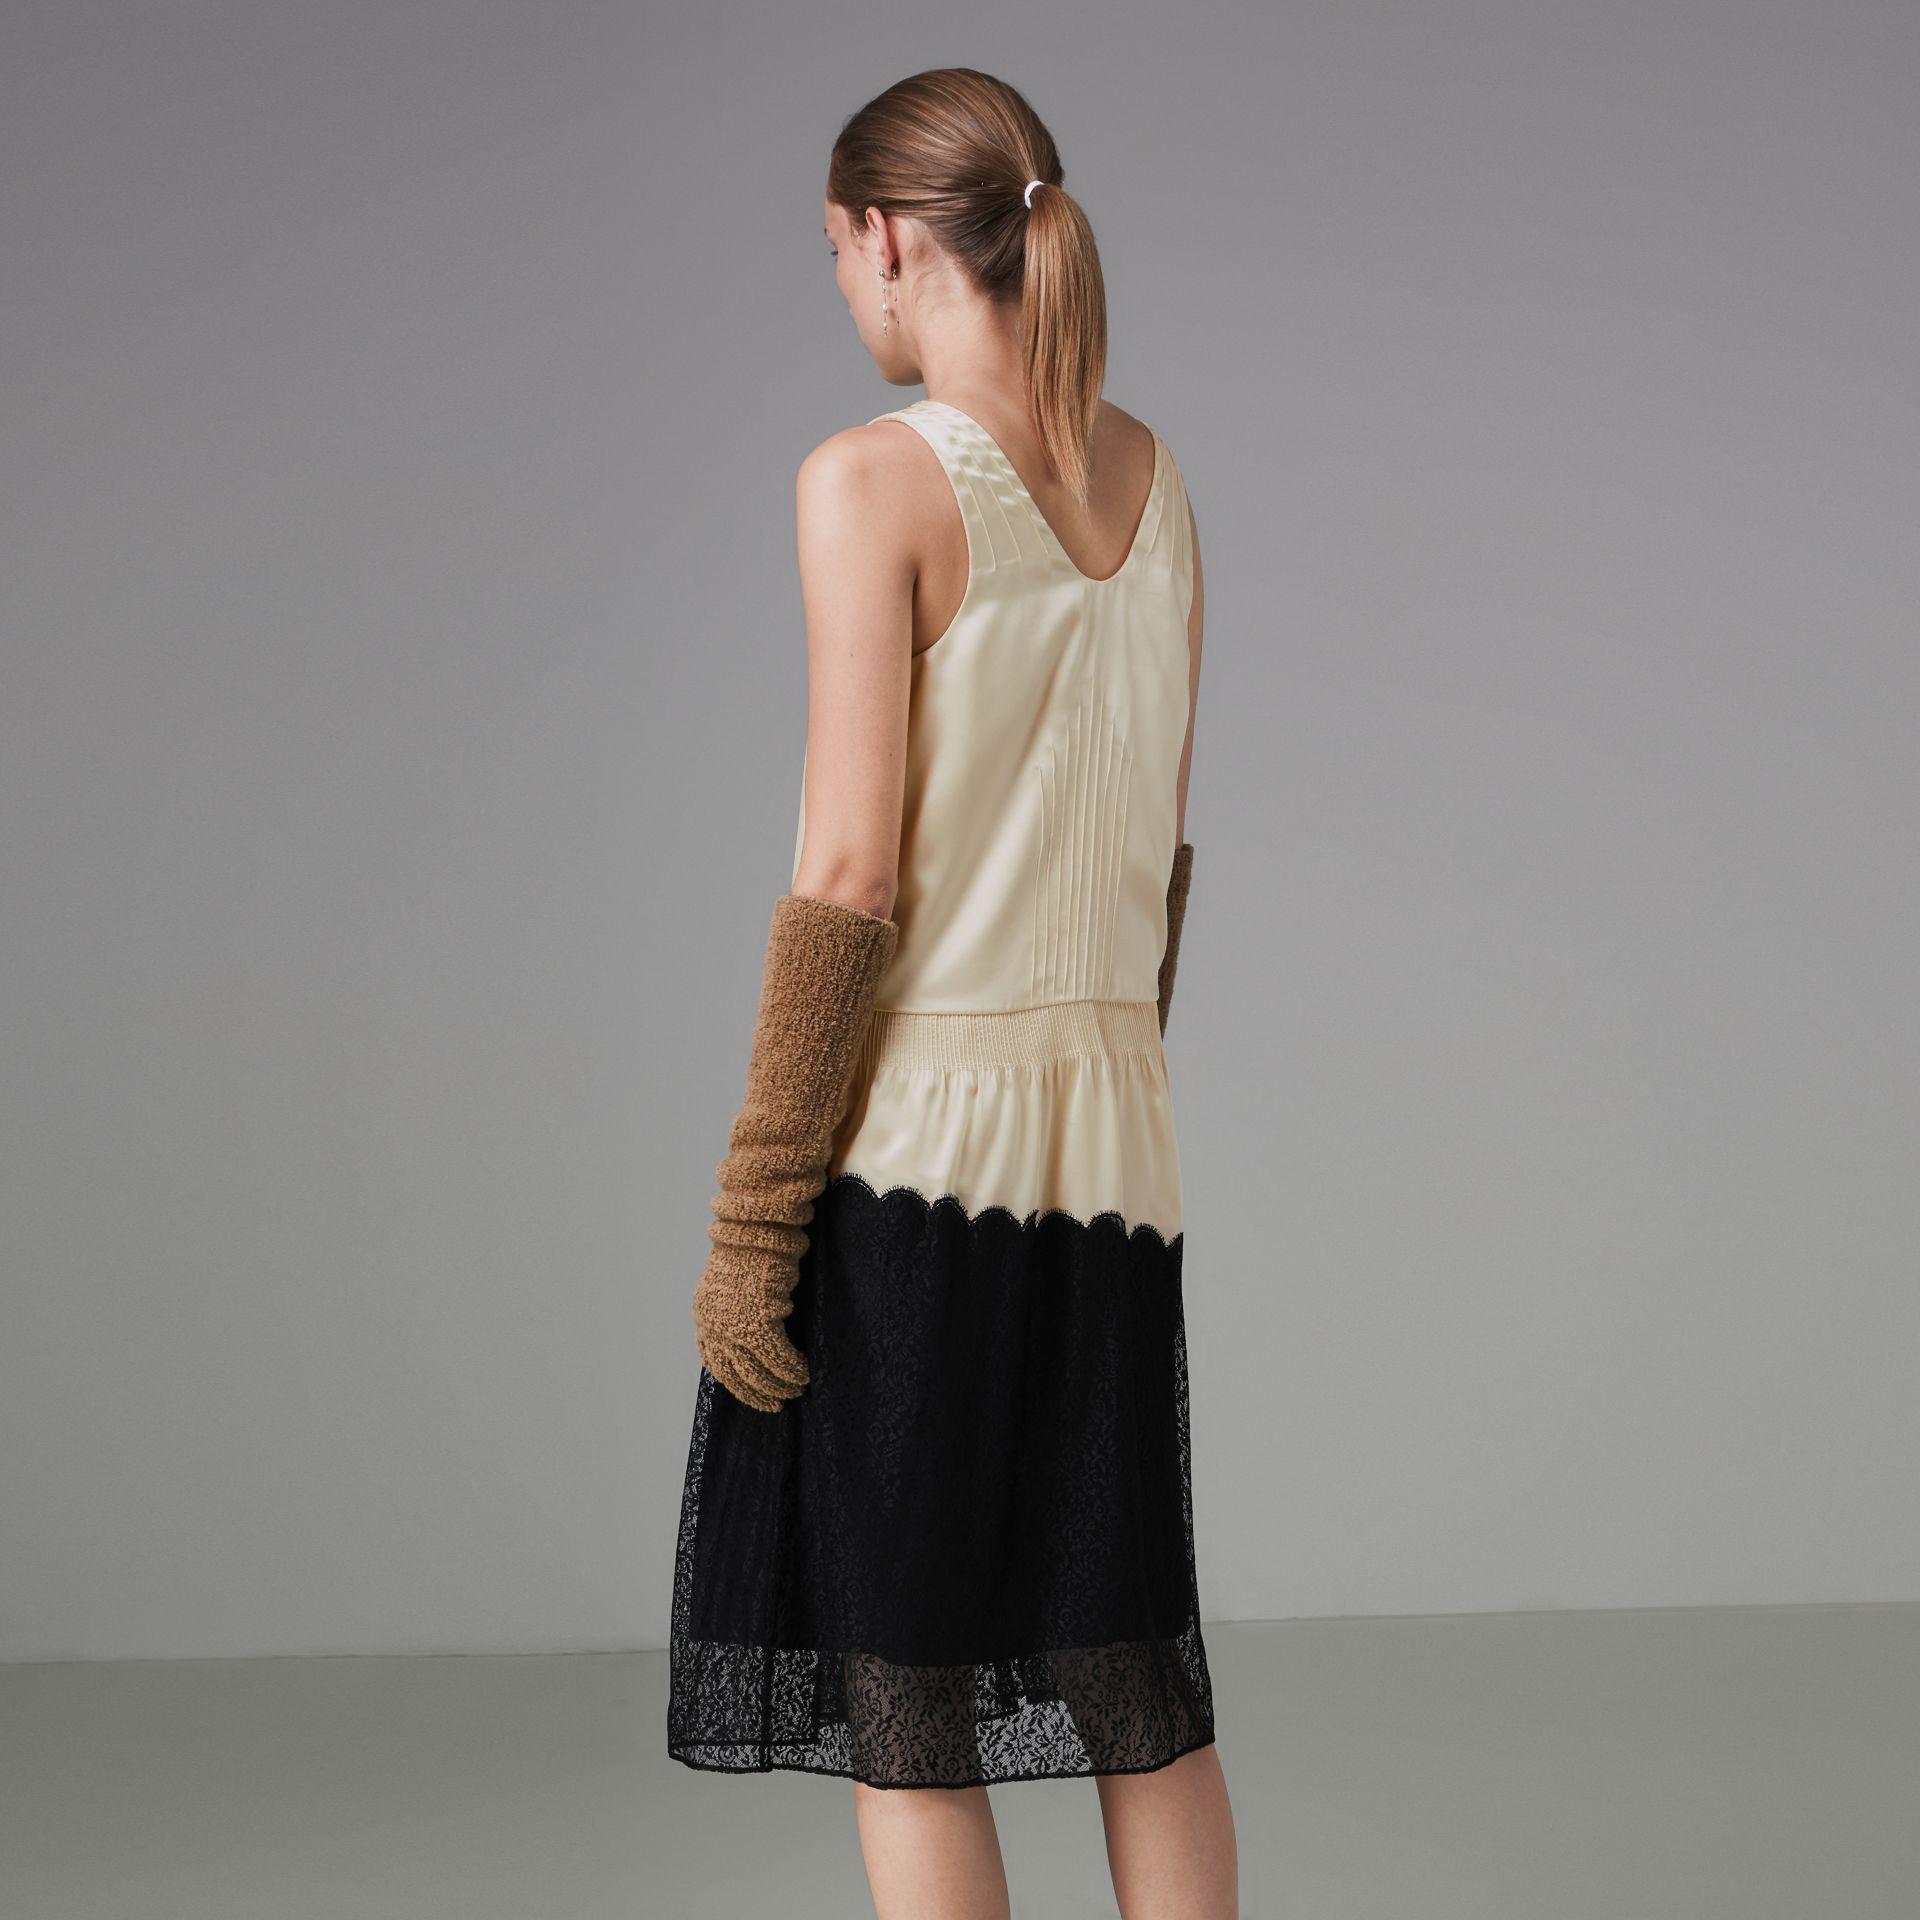 Silk Satin and Lace Sleeveless Dress in Cream - Women | Burberry - gallery image 2